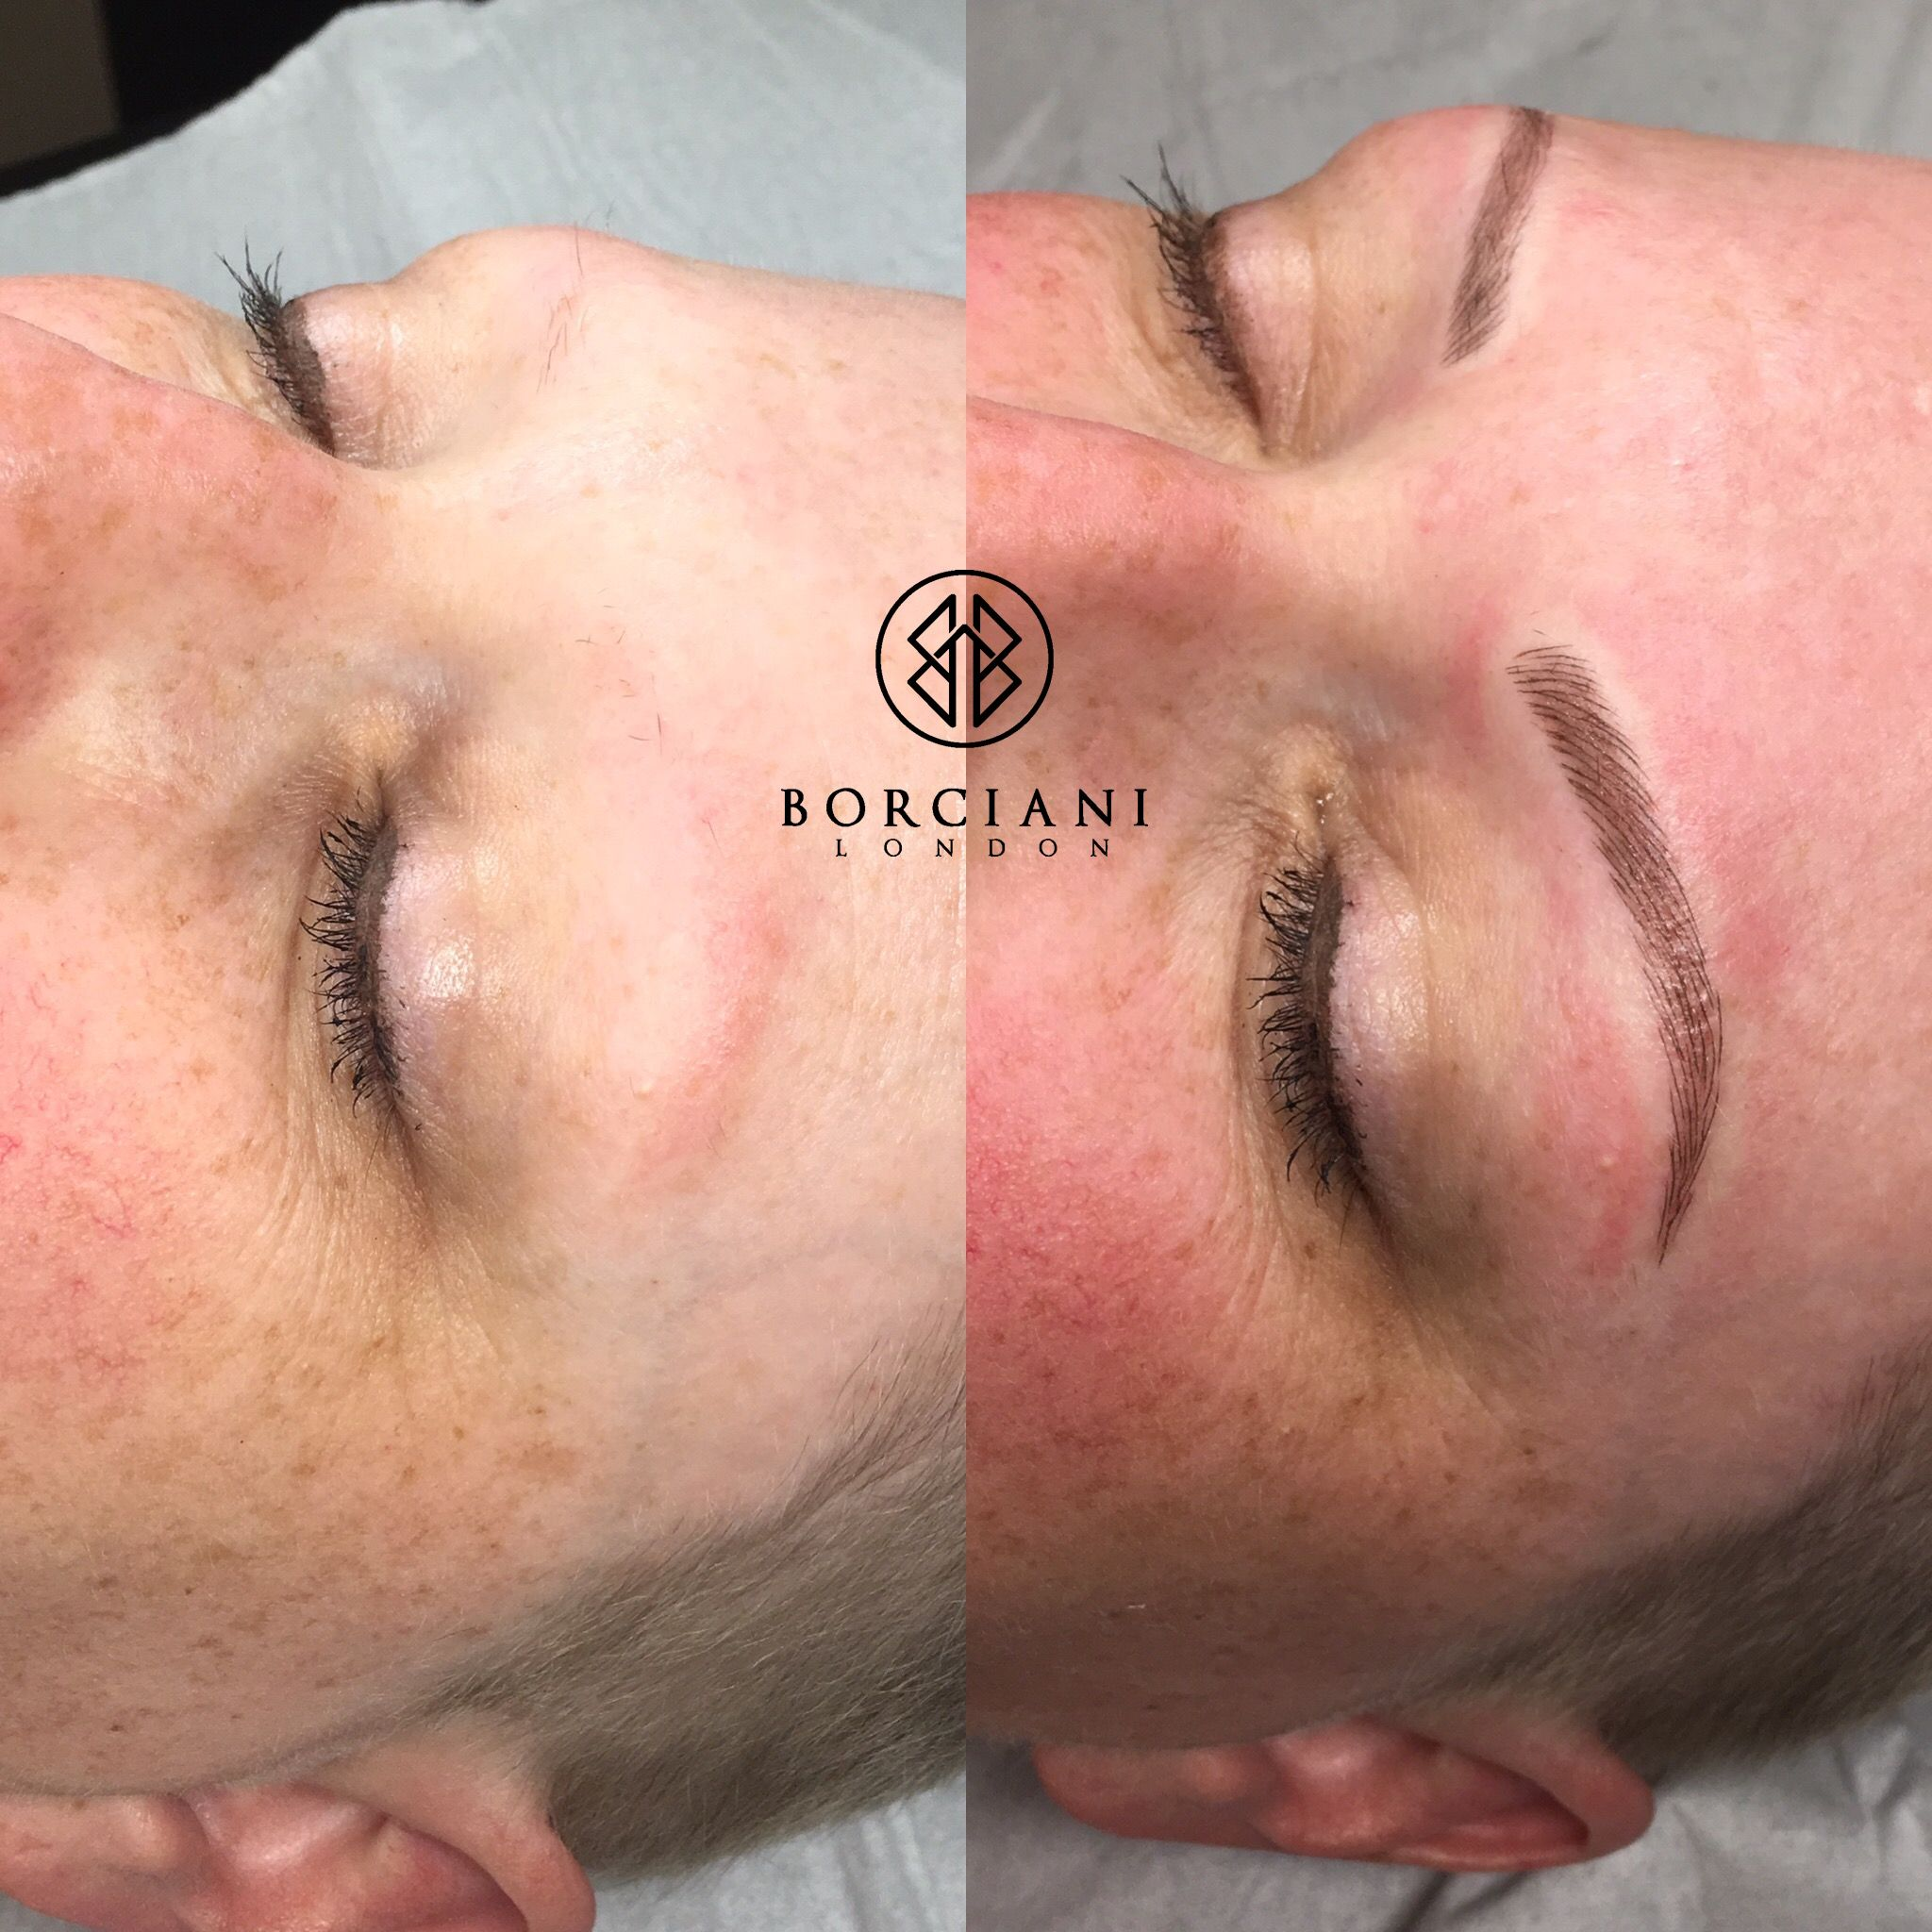 Have You Lost Your Brows Following Chemotherapy Or Due To Alopecia